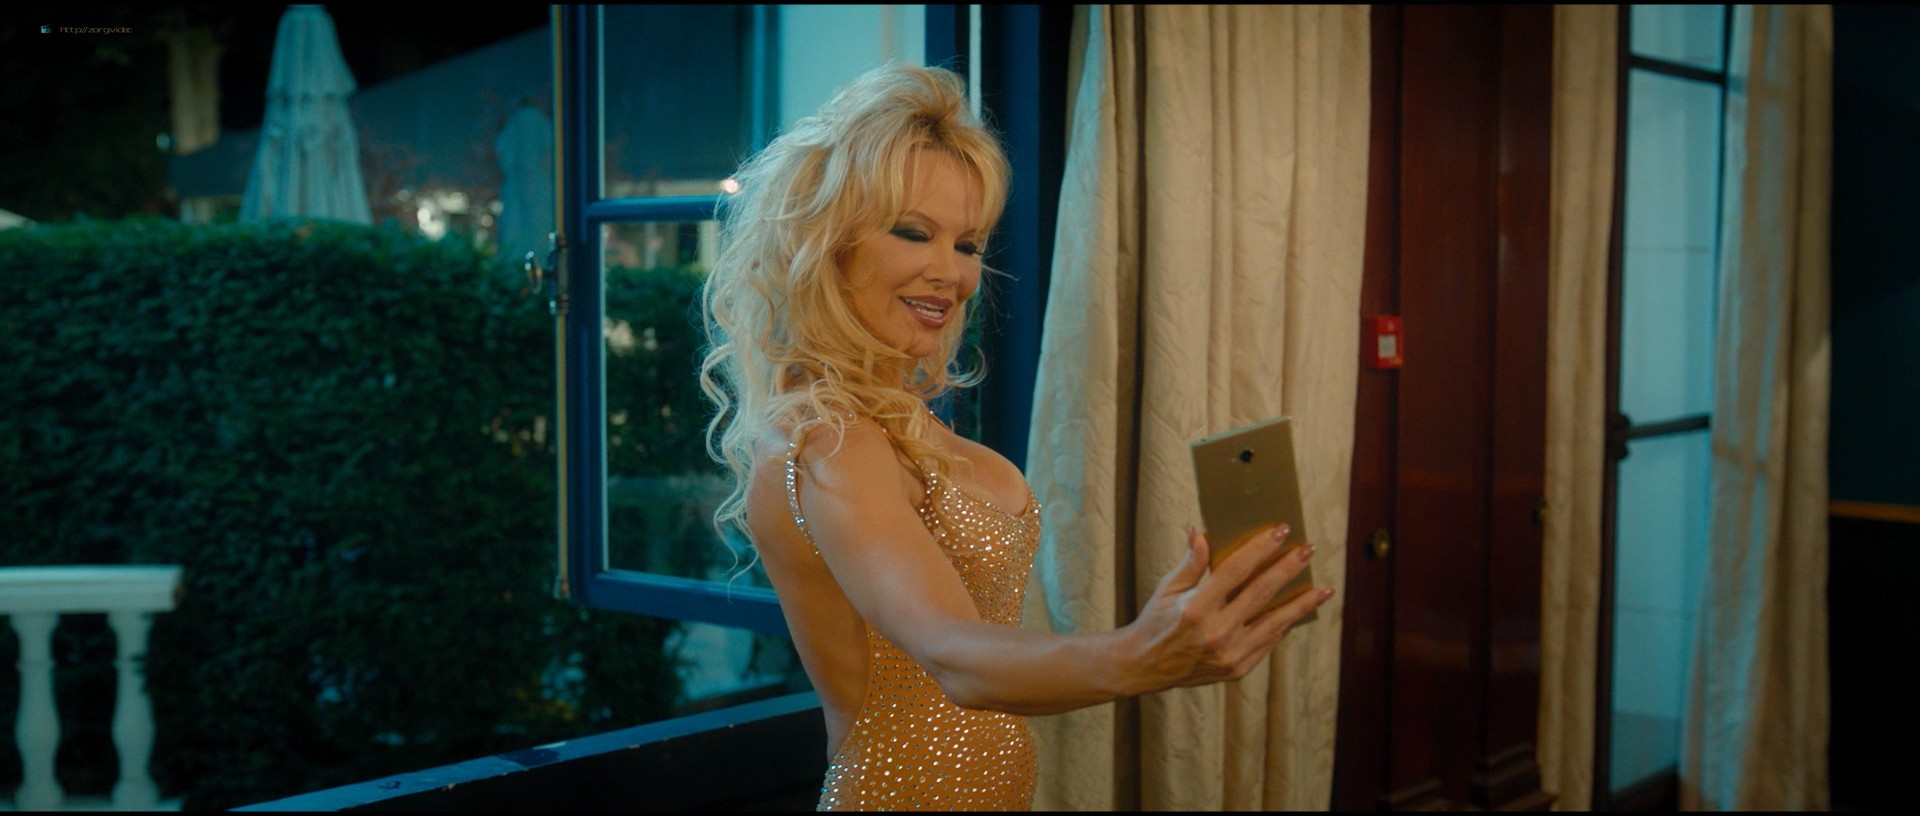 Pamela Anderson sexy Élodie Fontan and others hot - Nicky Larson et le parfum de Cupidon (2018) 1080p BluRay (2)